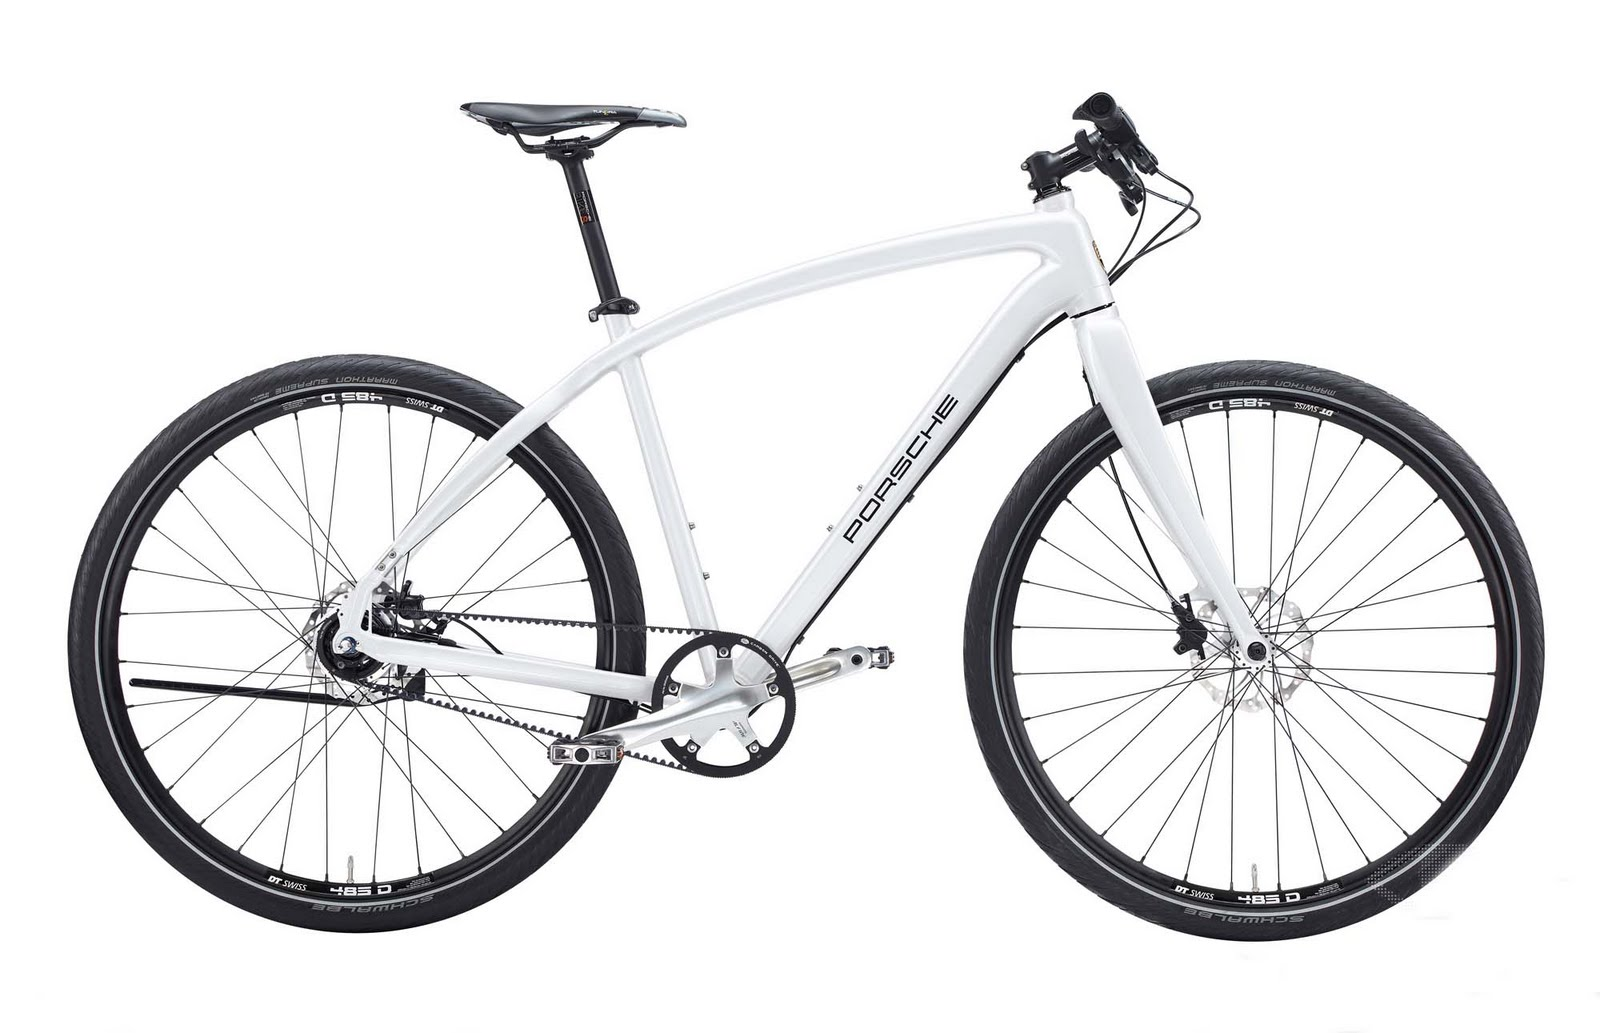 Great for Cycling, Performance Specialized Bike for Women and Men.